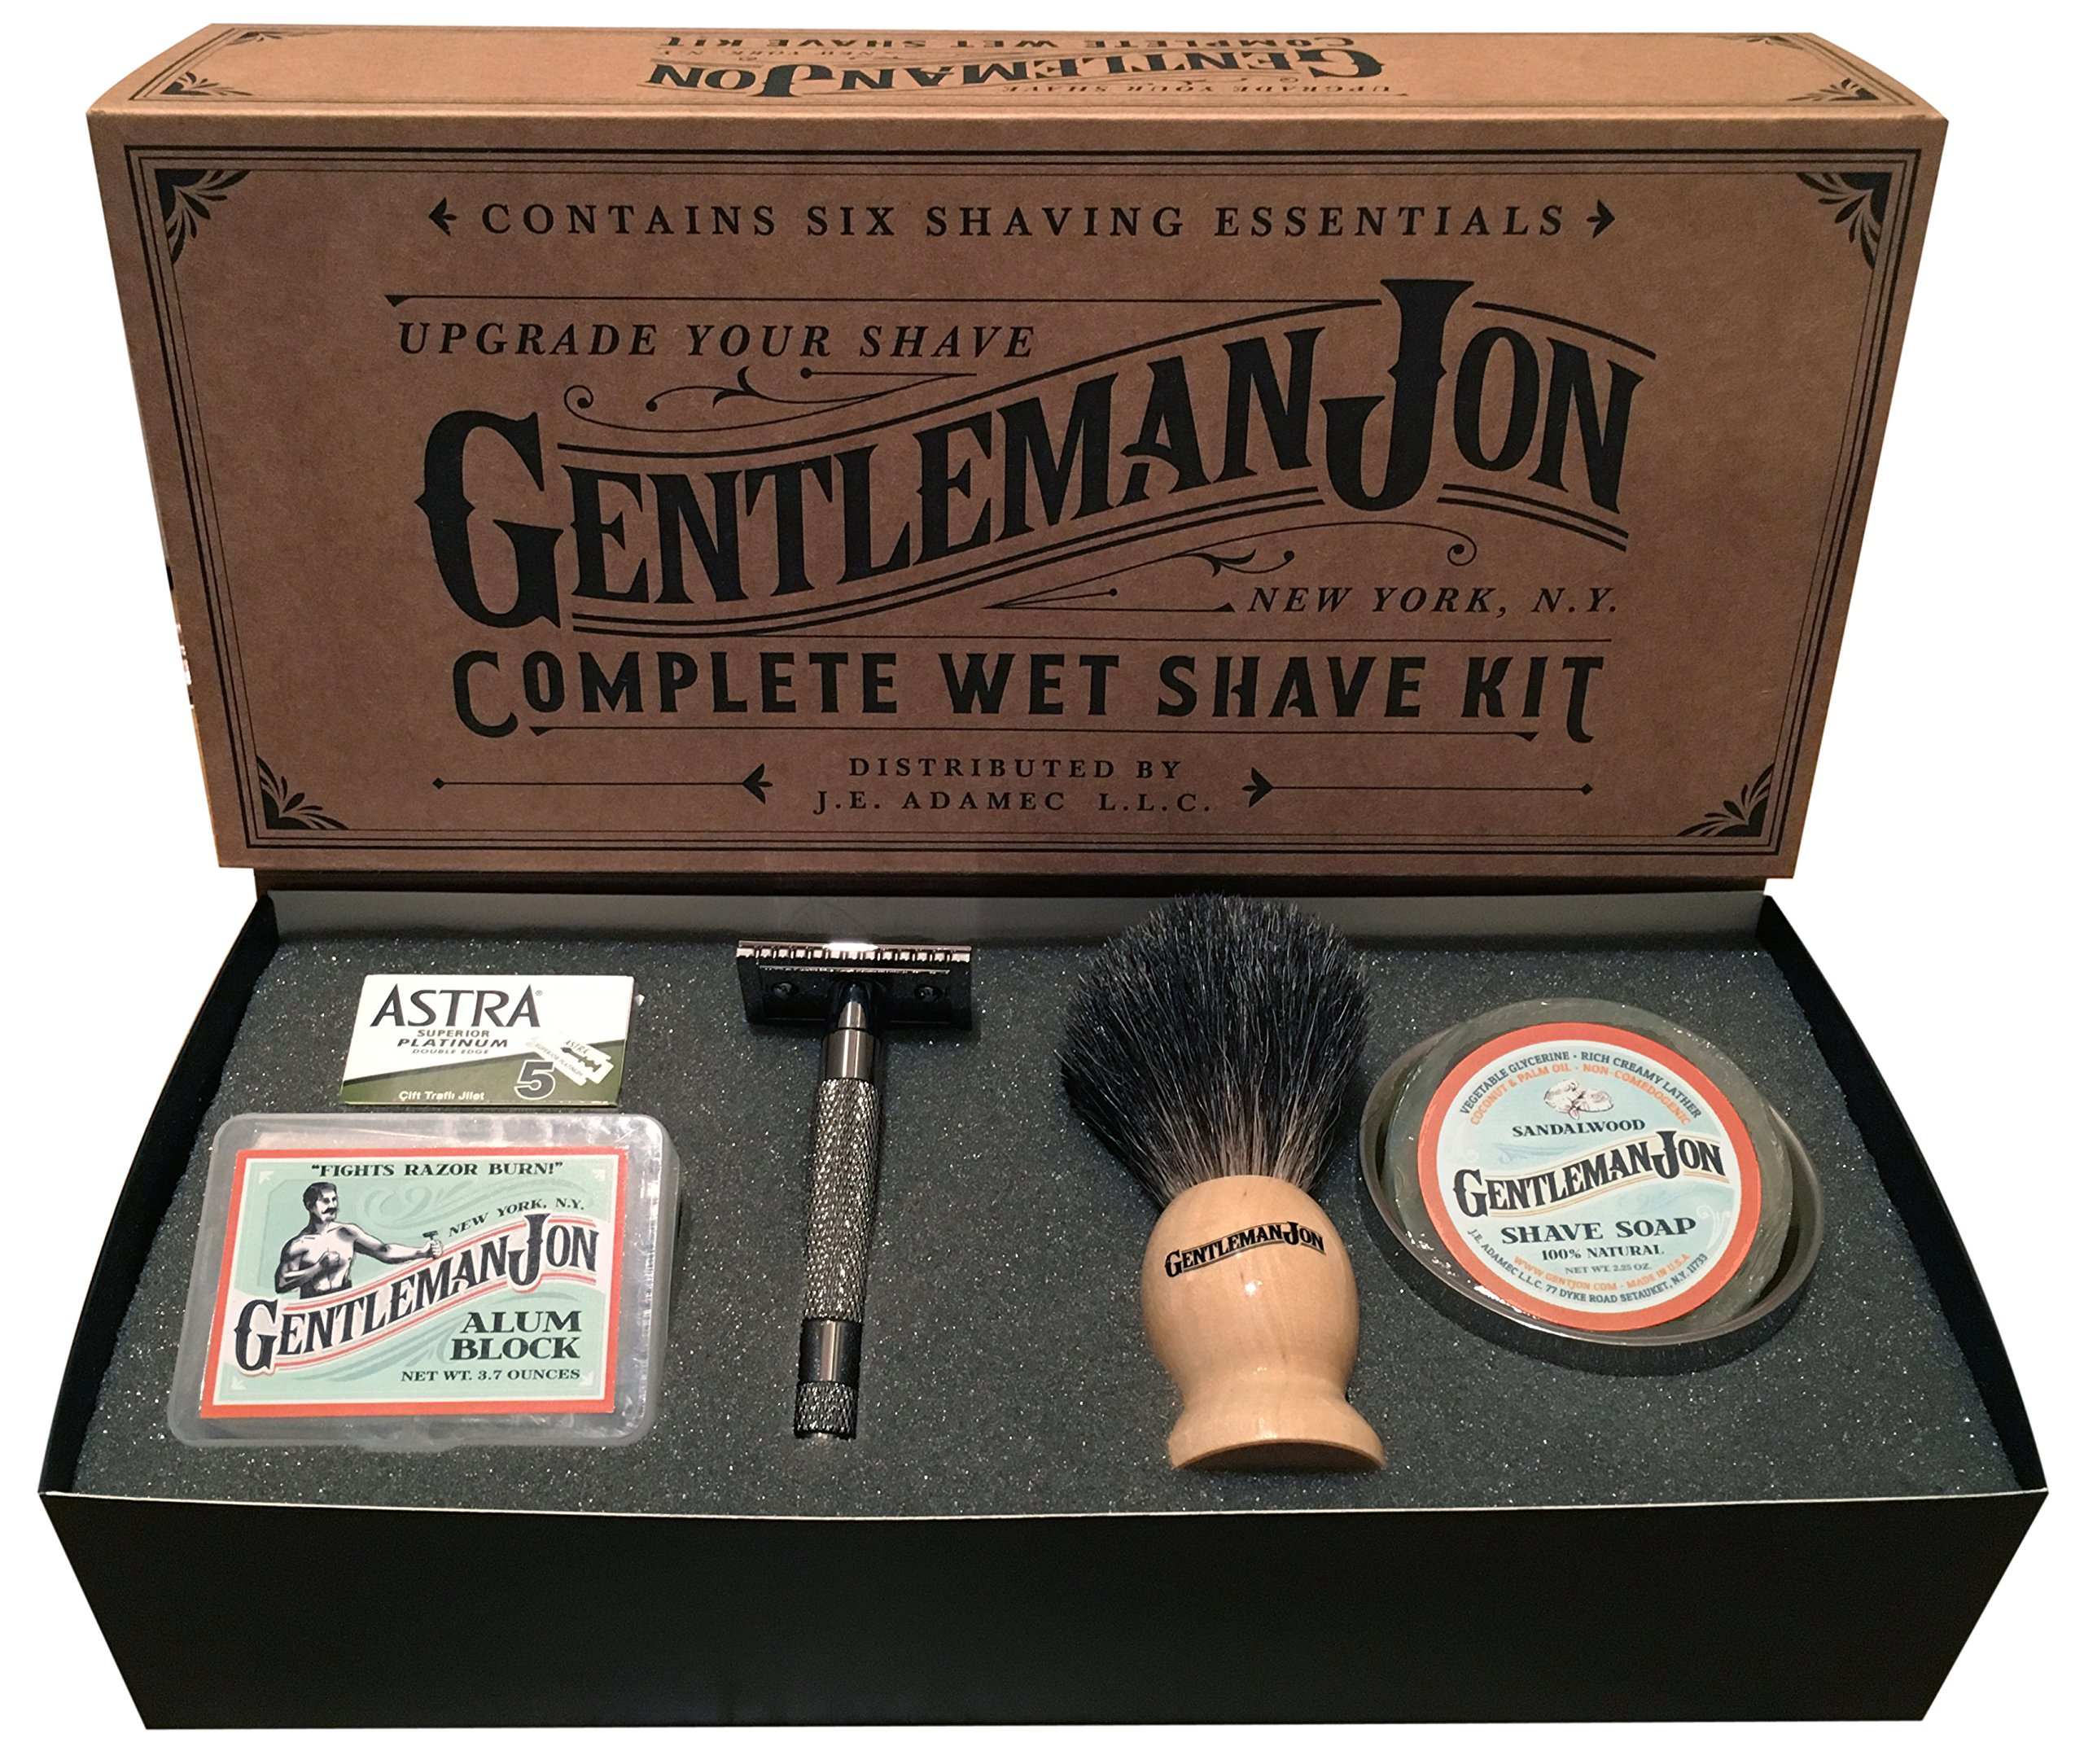 Gentleman Jon Complete Wet Shave Kit | Includes 6 Items: One Safety Razor, One Badger Hair Brush, One Alum Block, One Shave Soap, One Stainless Steel Bowl and Five Razor Blades by Gentleman Jon (Image #1)